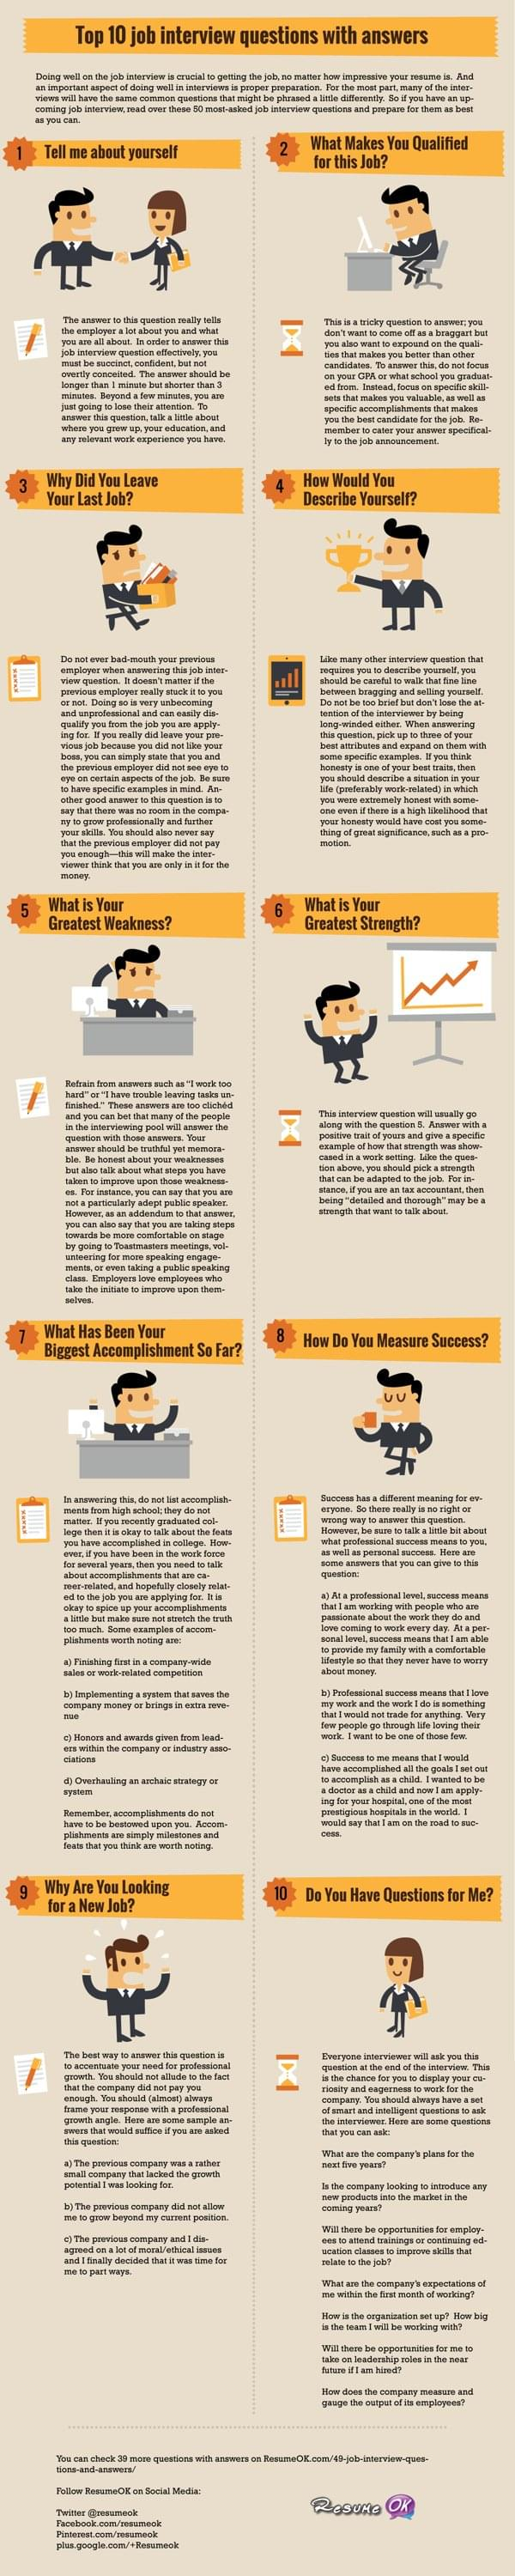 Top 10 Job Interview Questions With Answers